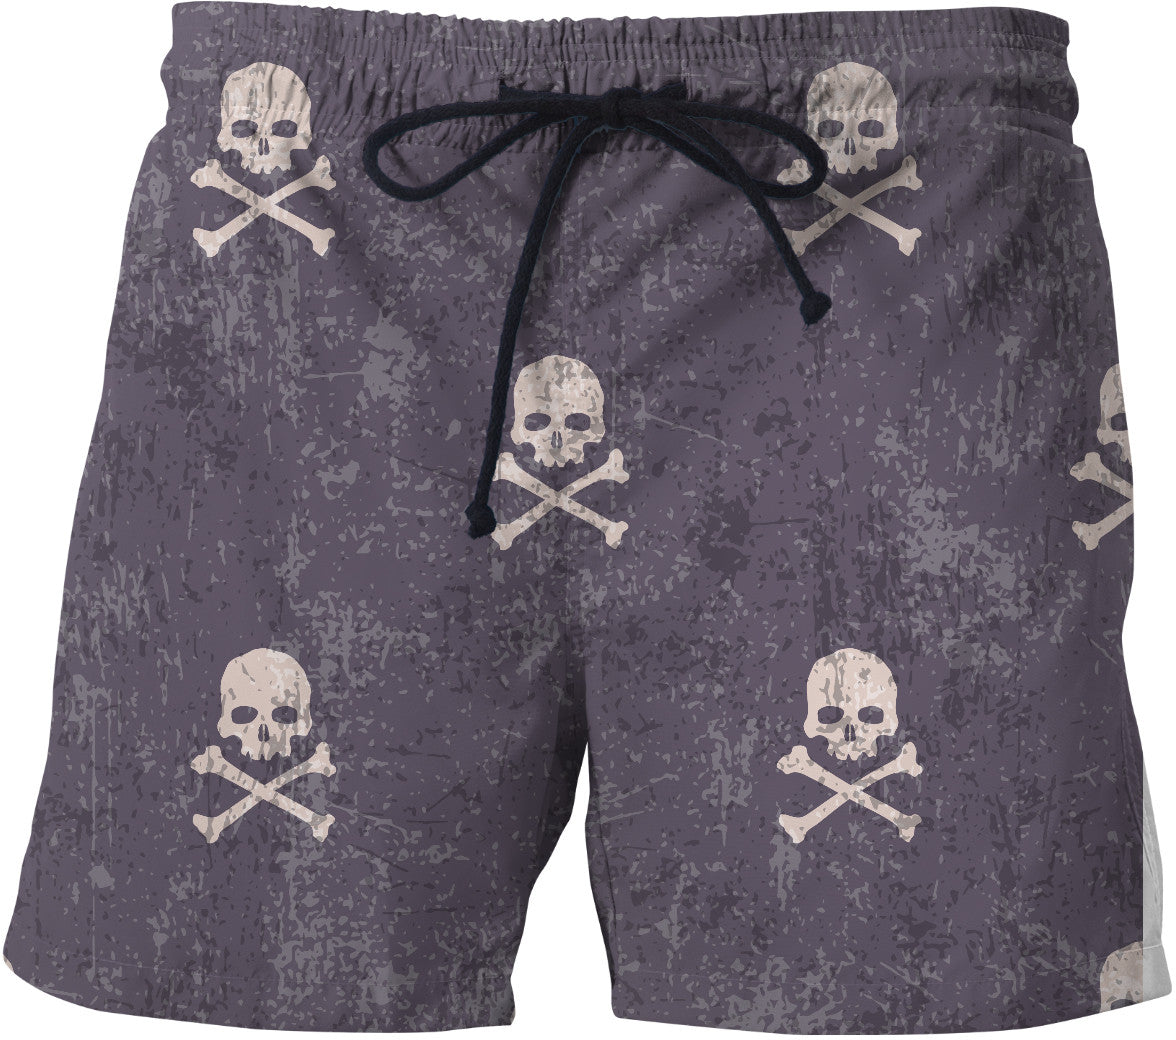 I'm Distressed Skull and Cross Bones Swim Shorts